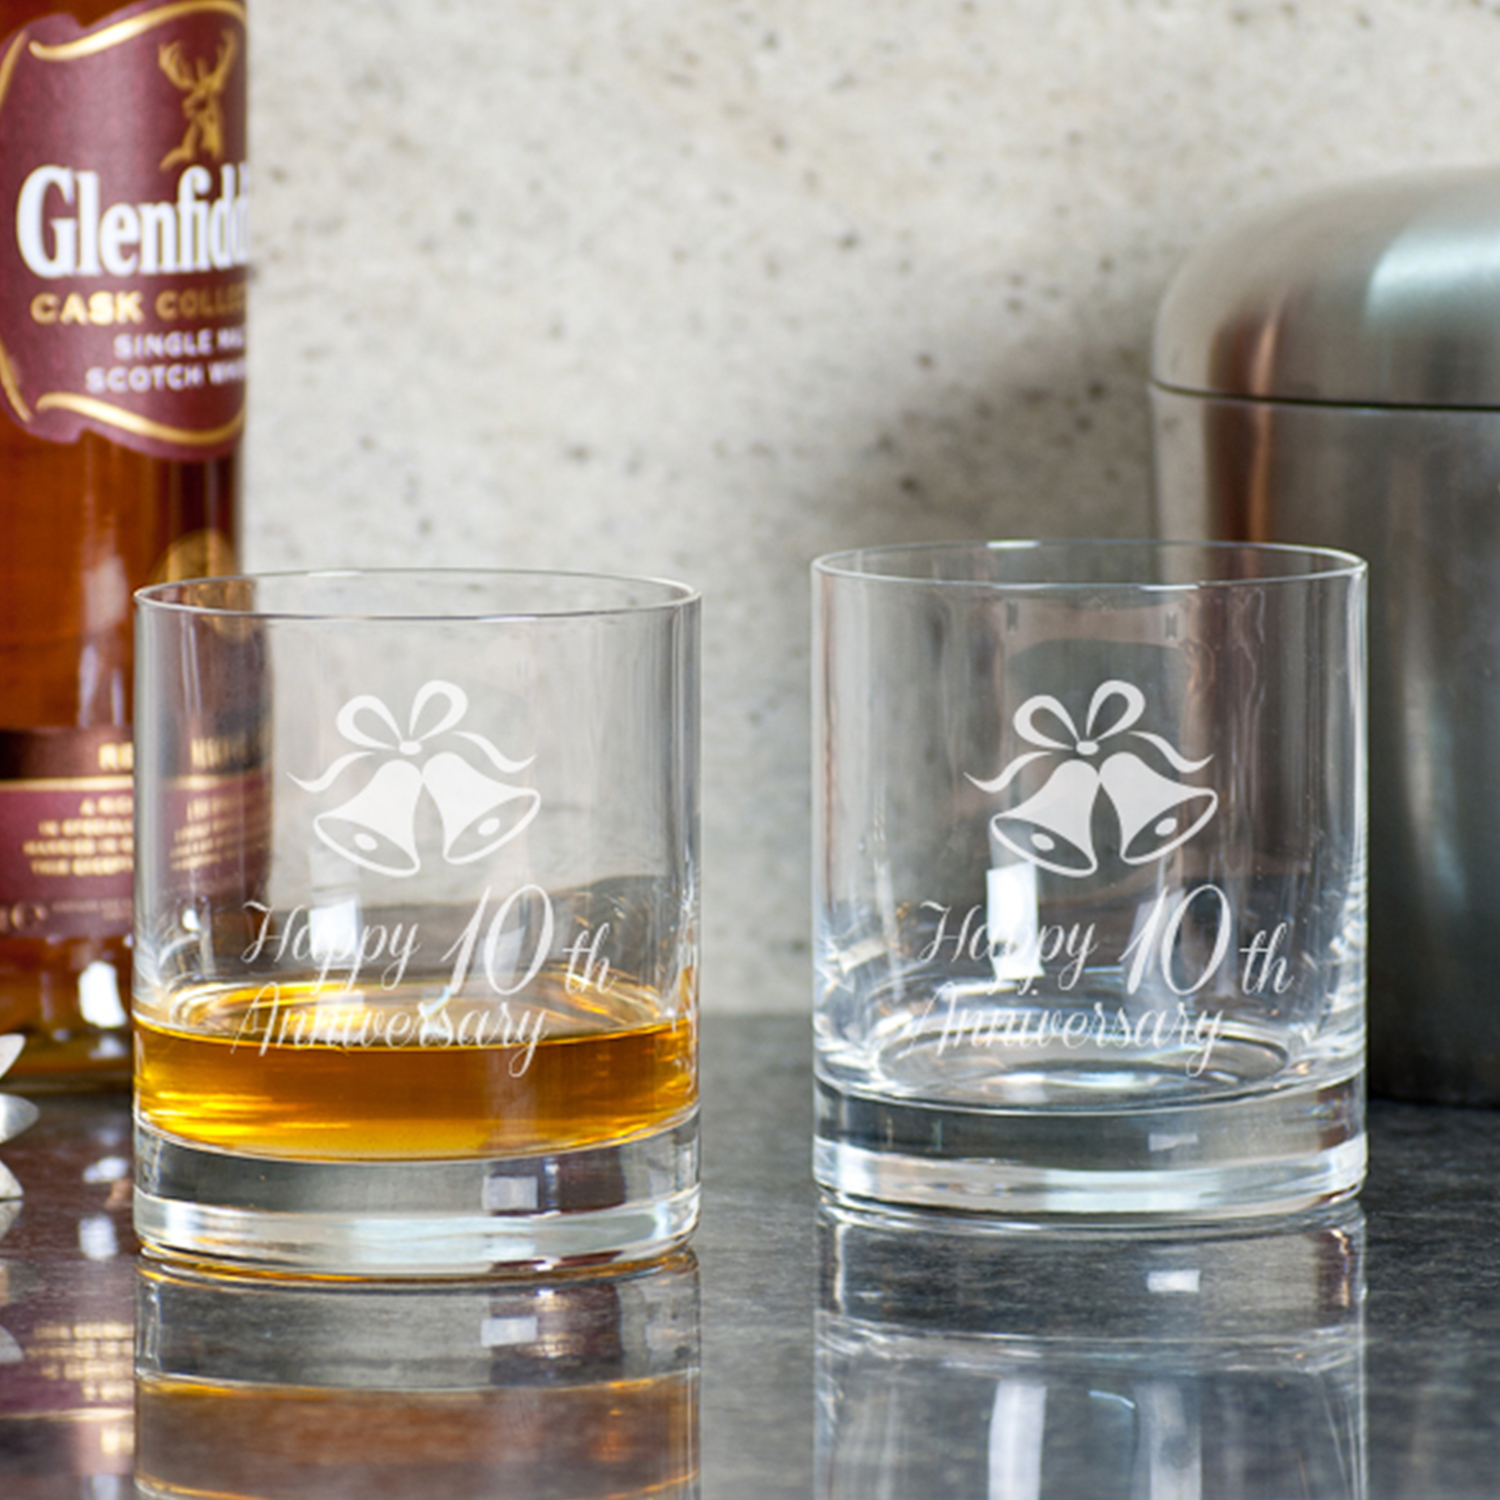 Happy Anniversary Personalized Gift Whiskey Glasses